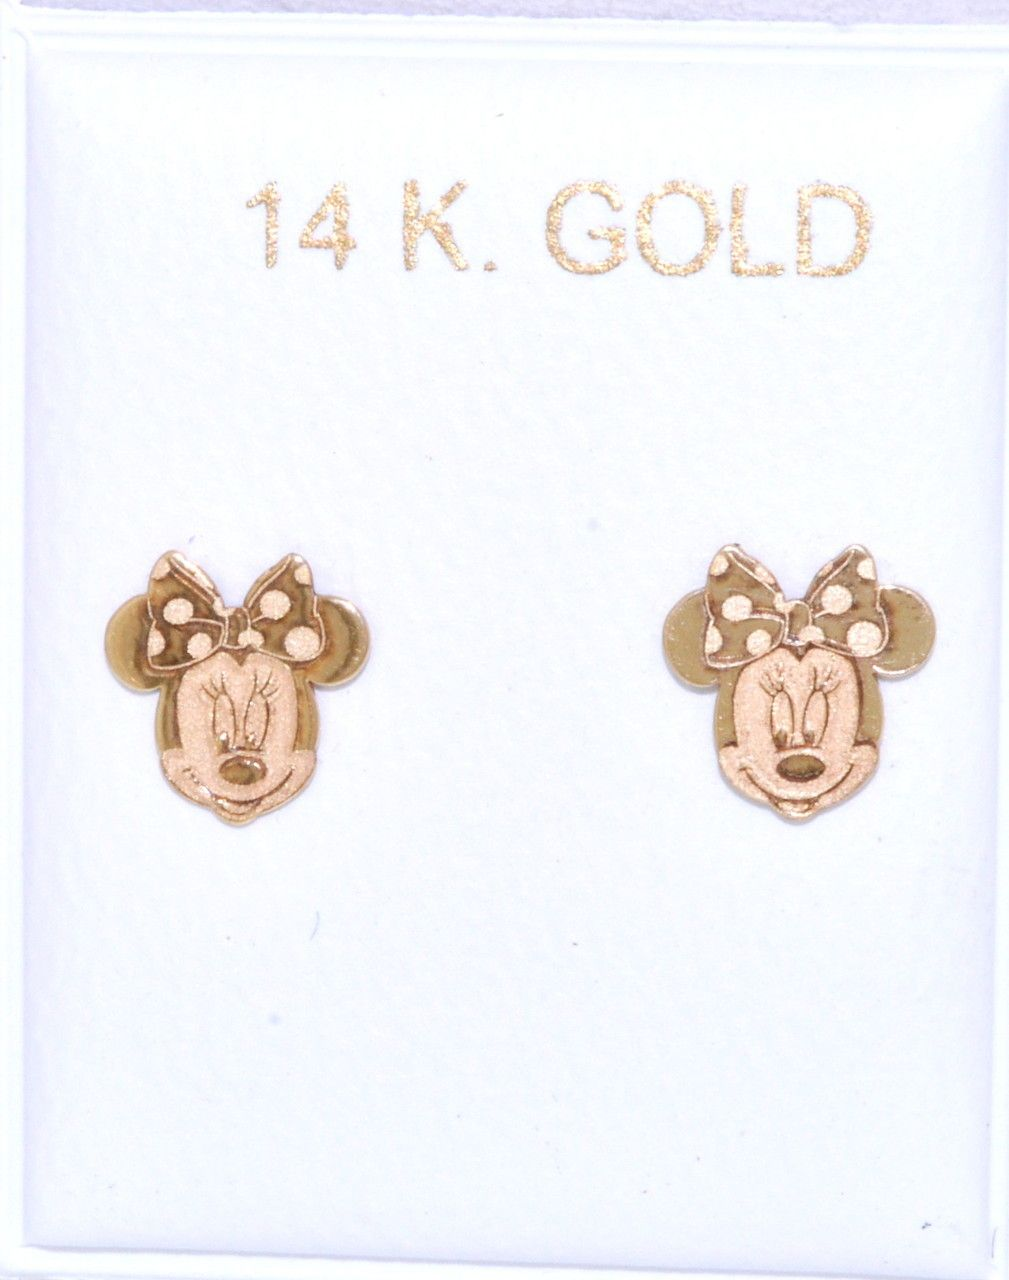 Love these! #minniemouse #earrings  (http://shop.shinjewelers.com/14k-yellow-gold-minnie-mouse-earrings-screw-backs-40002161/)